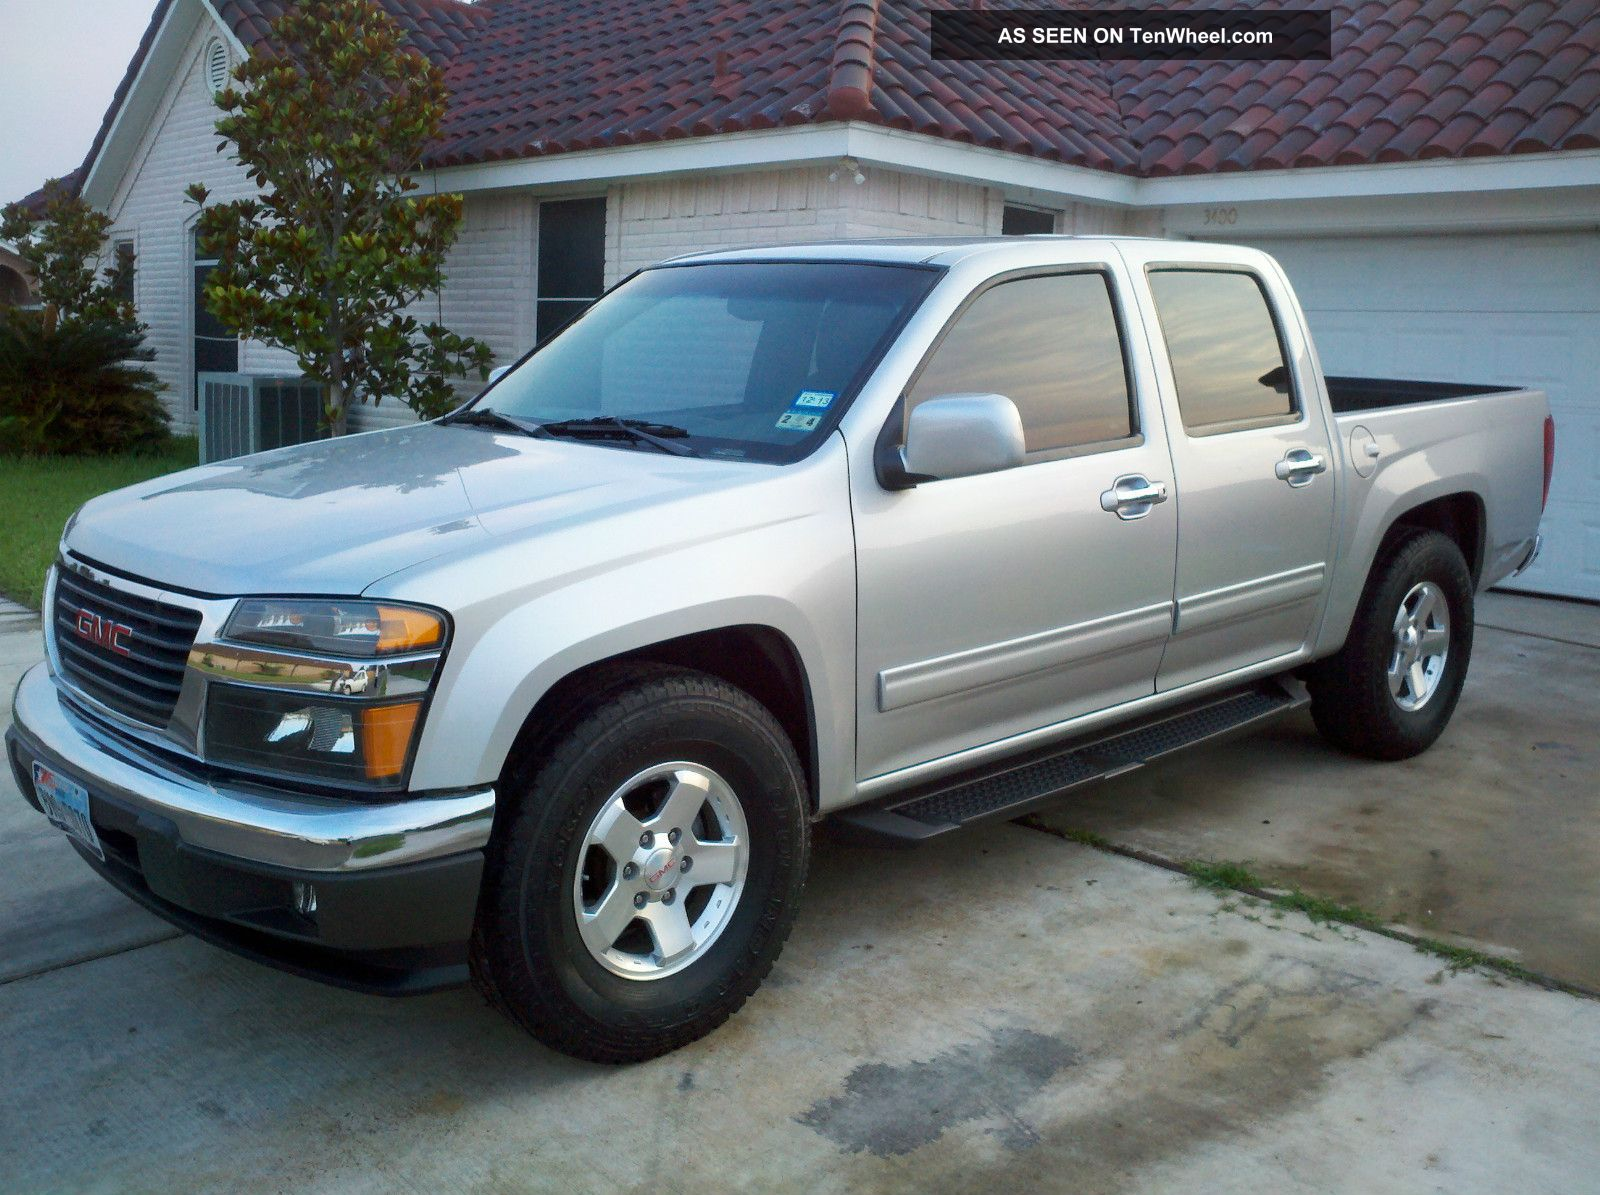 2011 Gmc Canyon Crew Cab 4 Doors Canyon photo